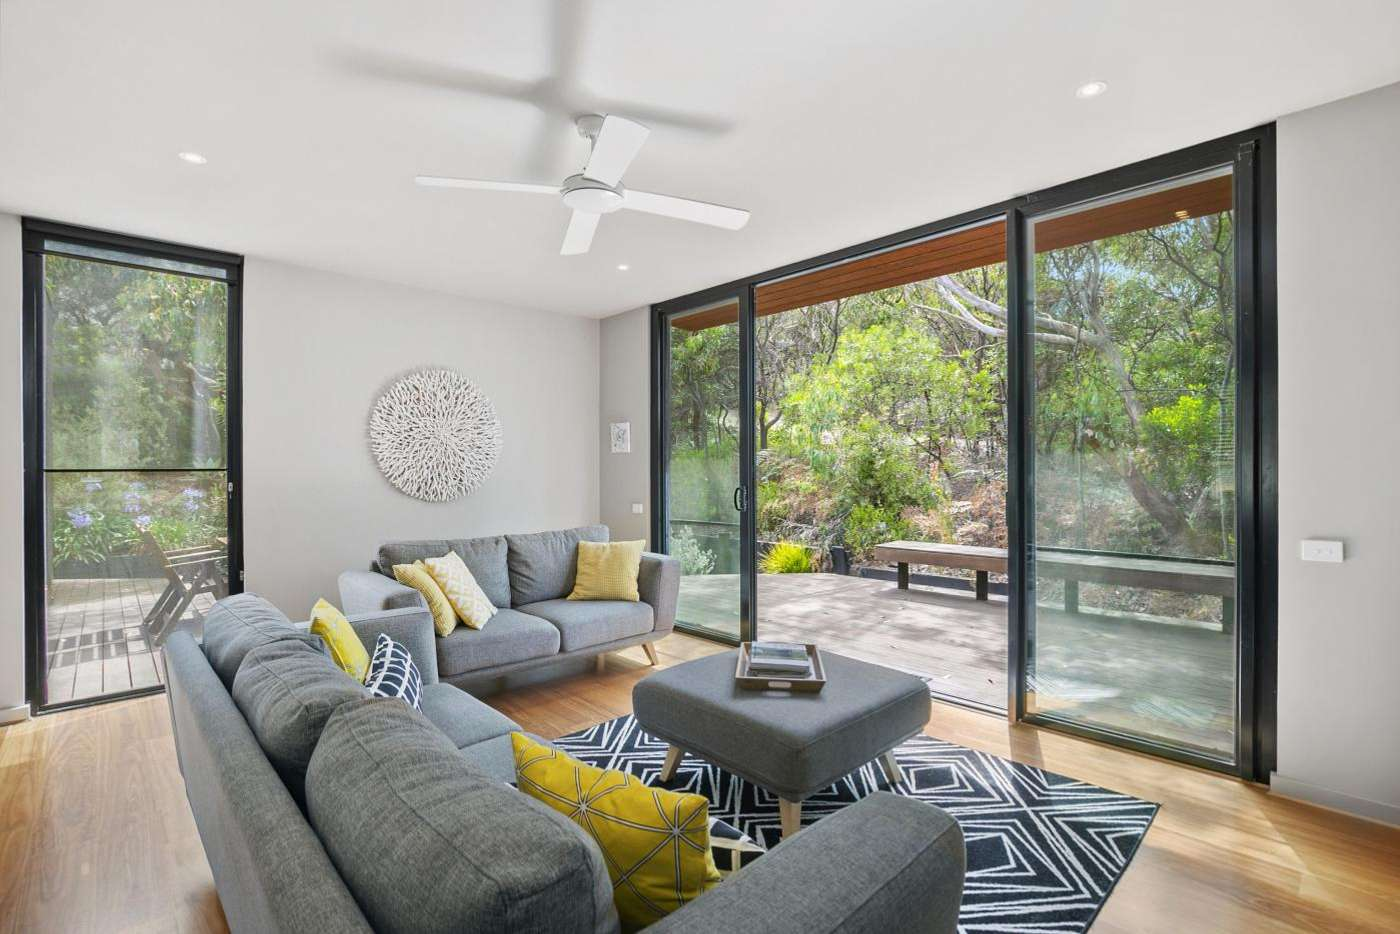 Fifth view of Homely house listing, 21a THIRD Avenue, Anglesea VIC 3230